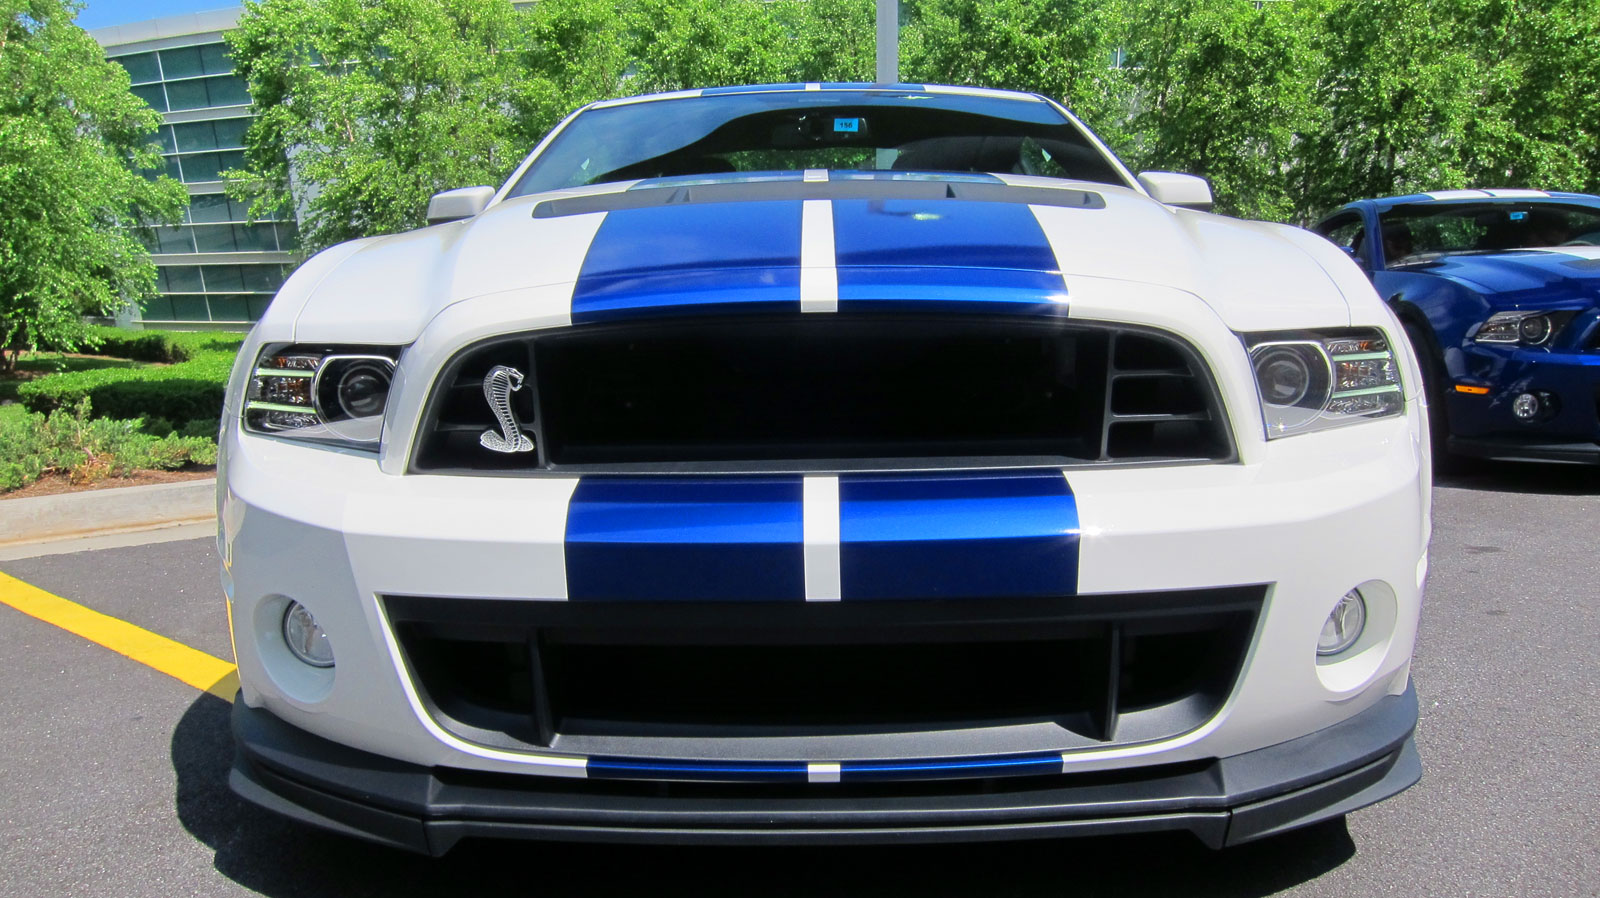 Ford Shelby Gt500 #23